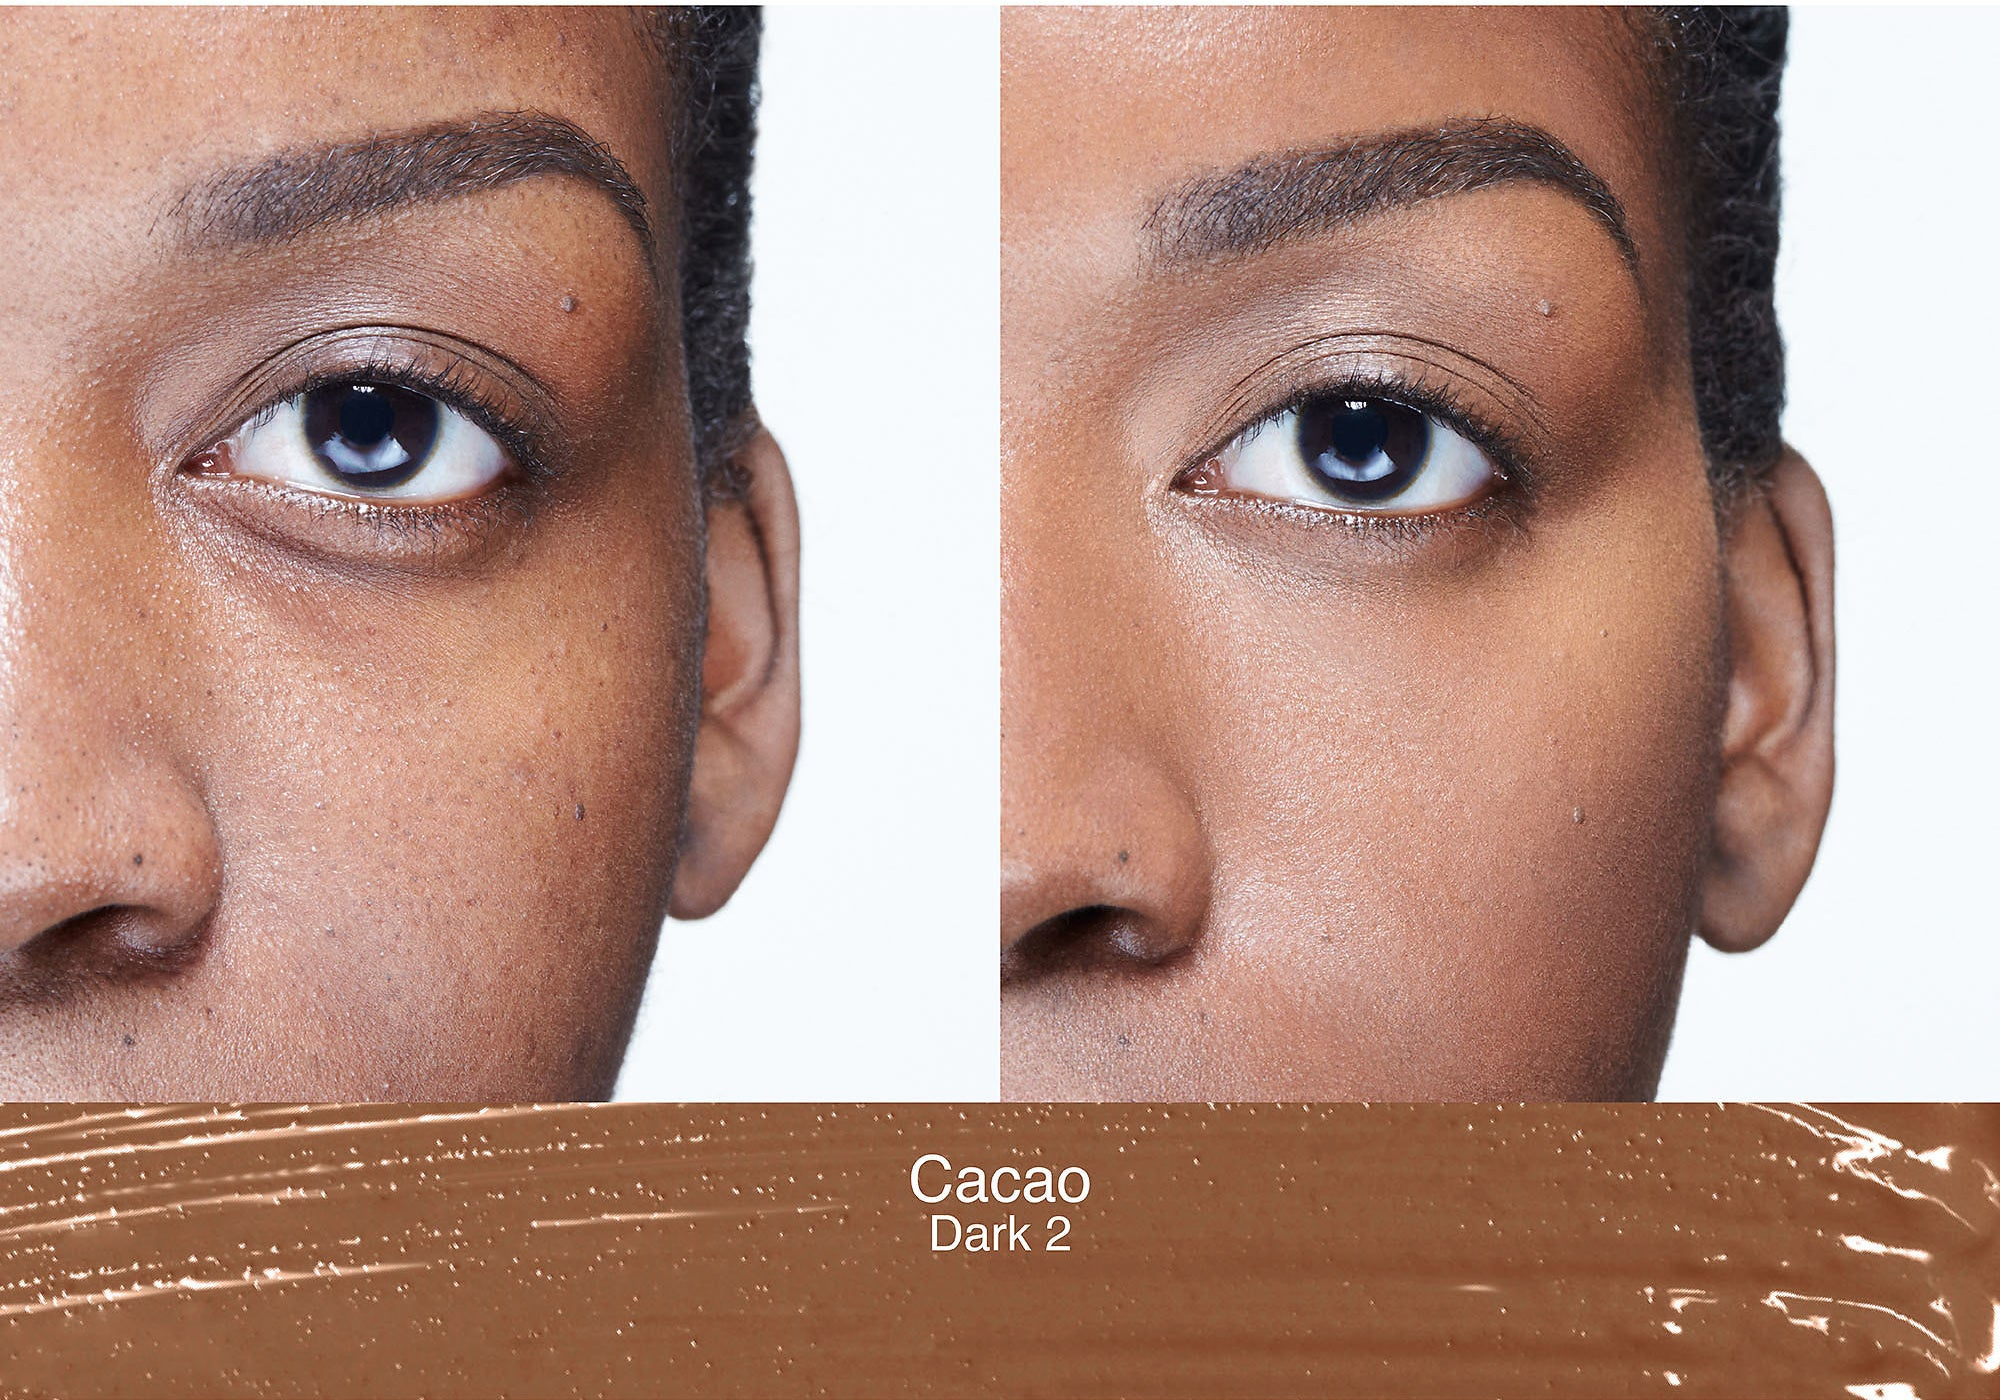 A model with dark circles and uneven skin on the left, the same model on the right with no dark circles and evened out skin